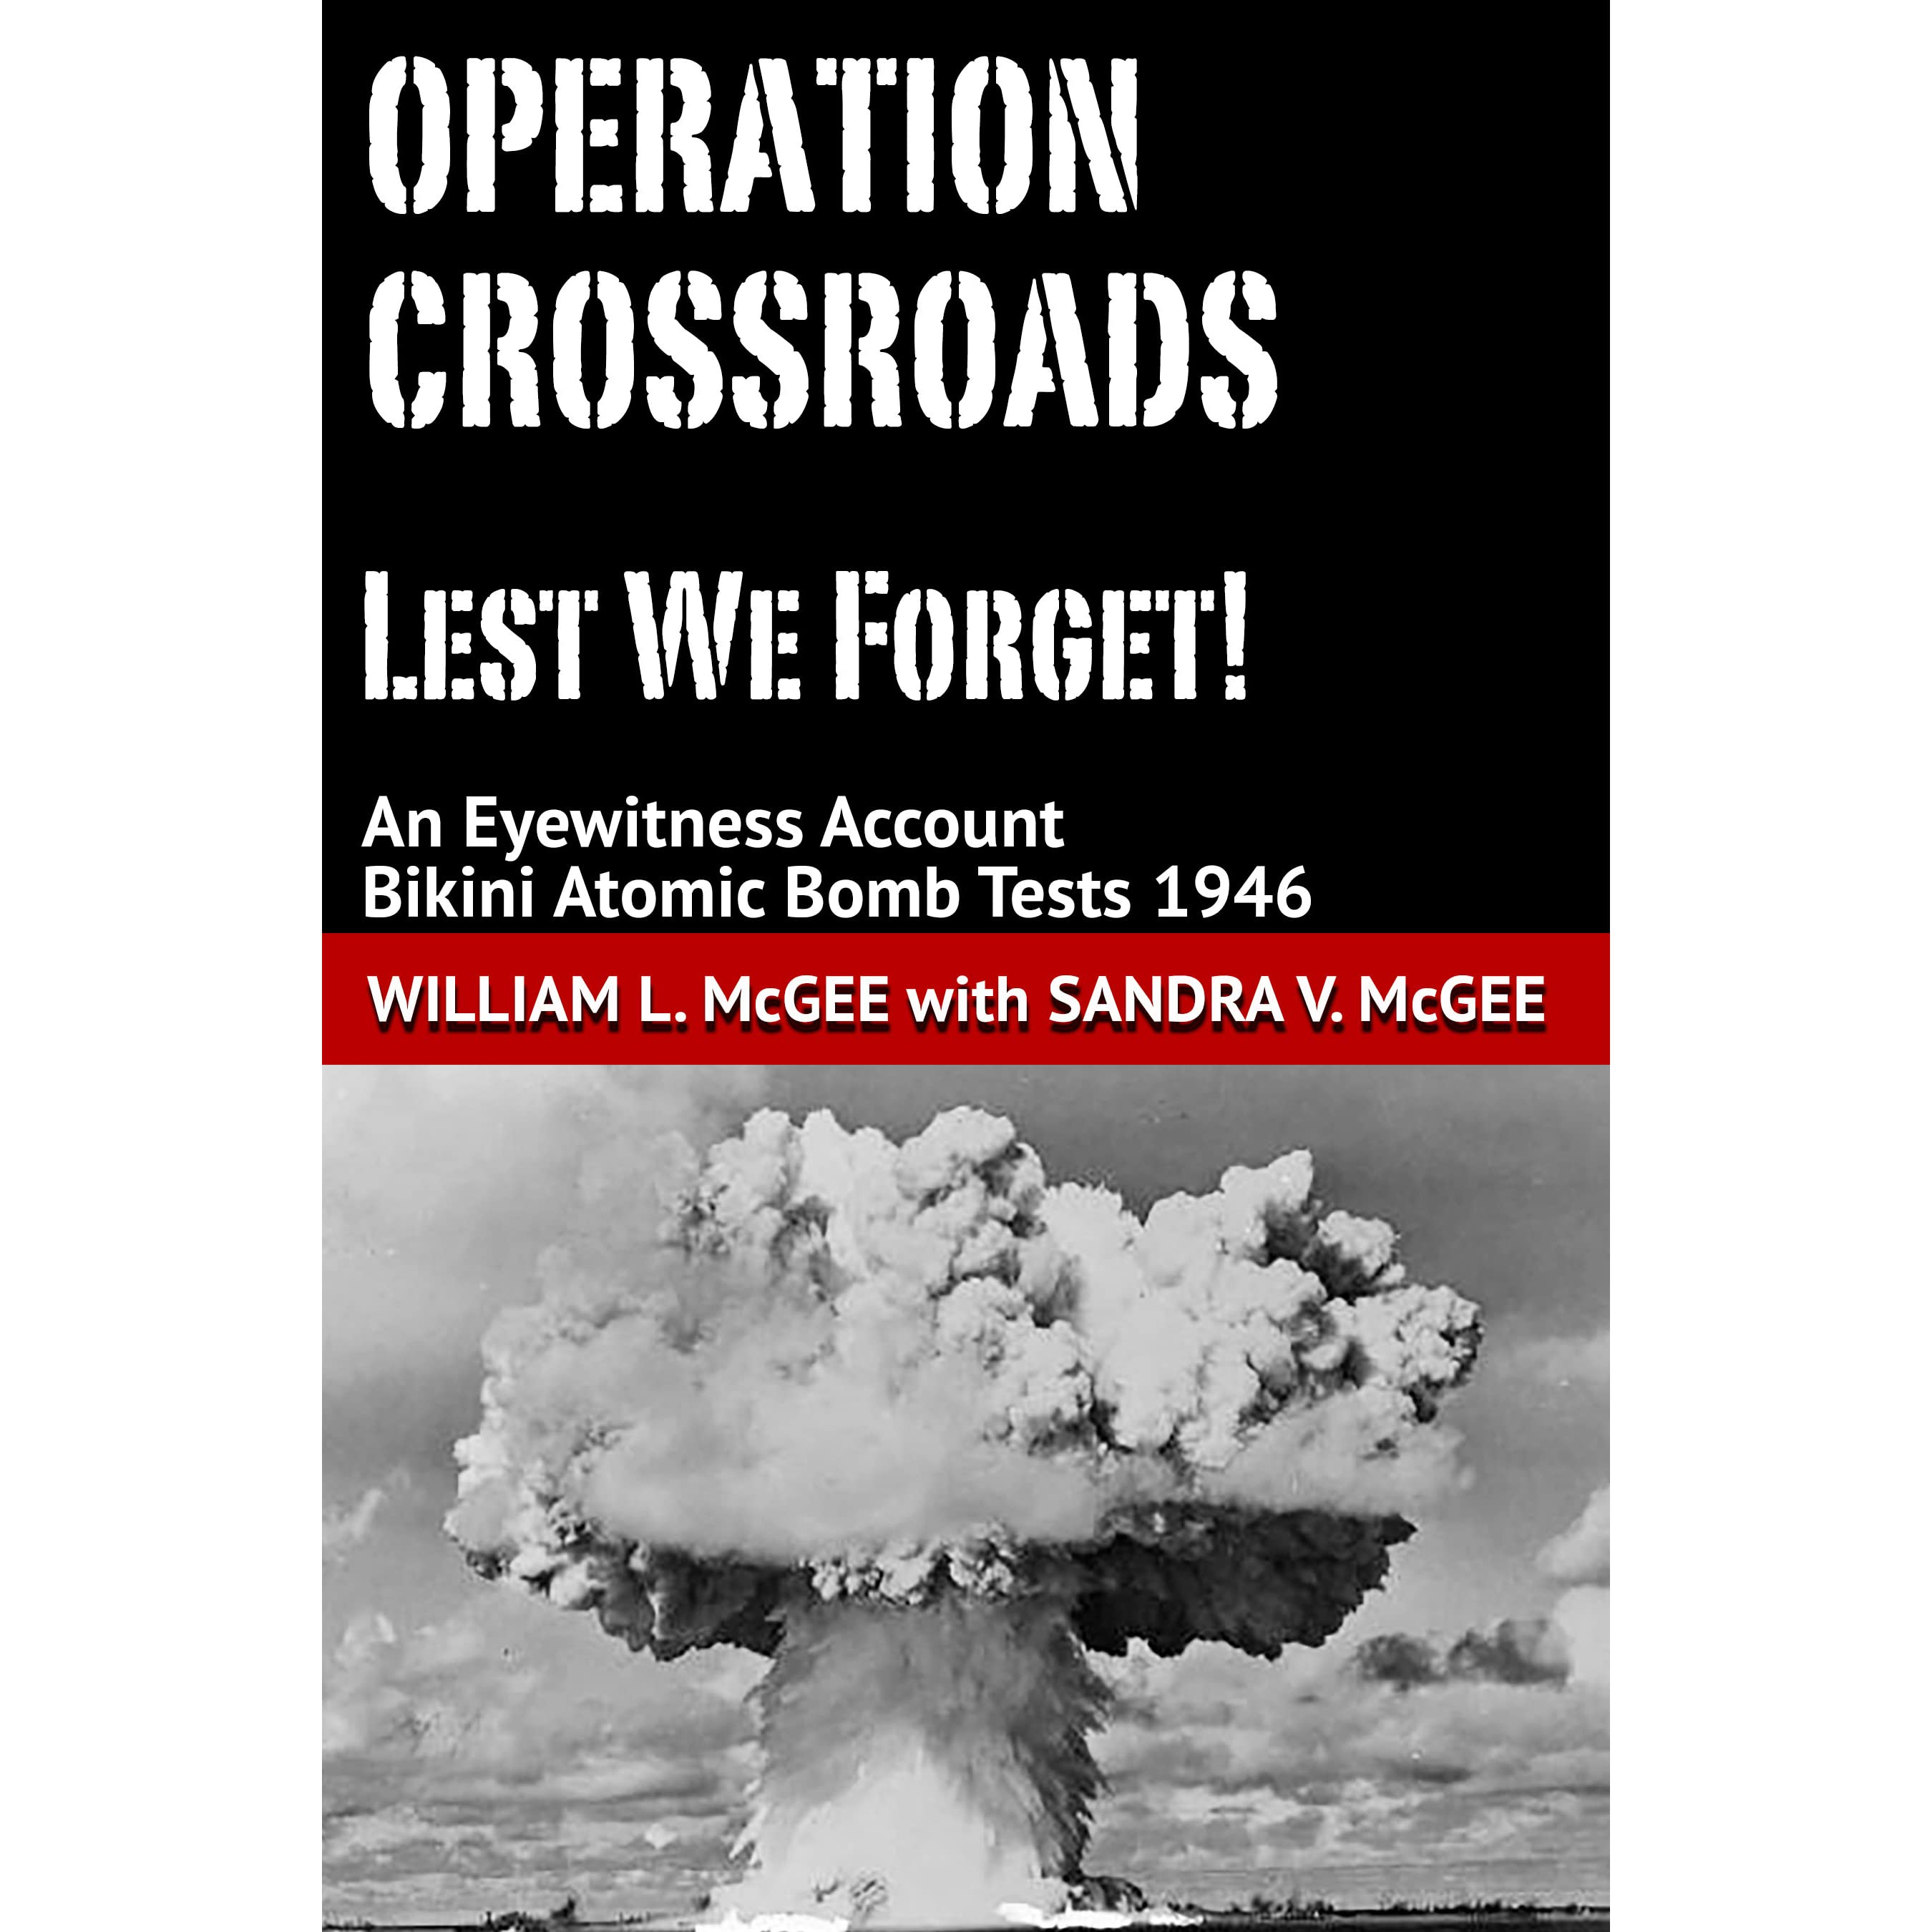 an analysis of the atomic bombs and the operation crossroads A series of fritz goro photographs made before, during and, especially, after two july 1946 atomic blasts at bikini atoll in the pacific.